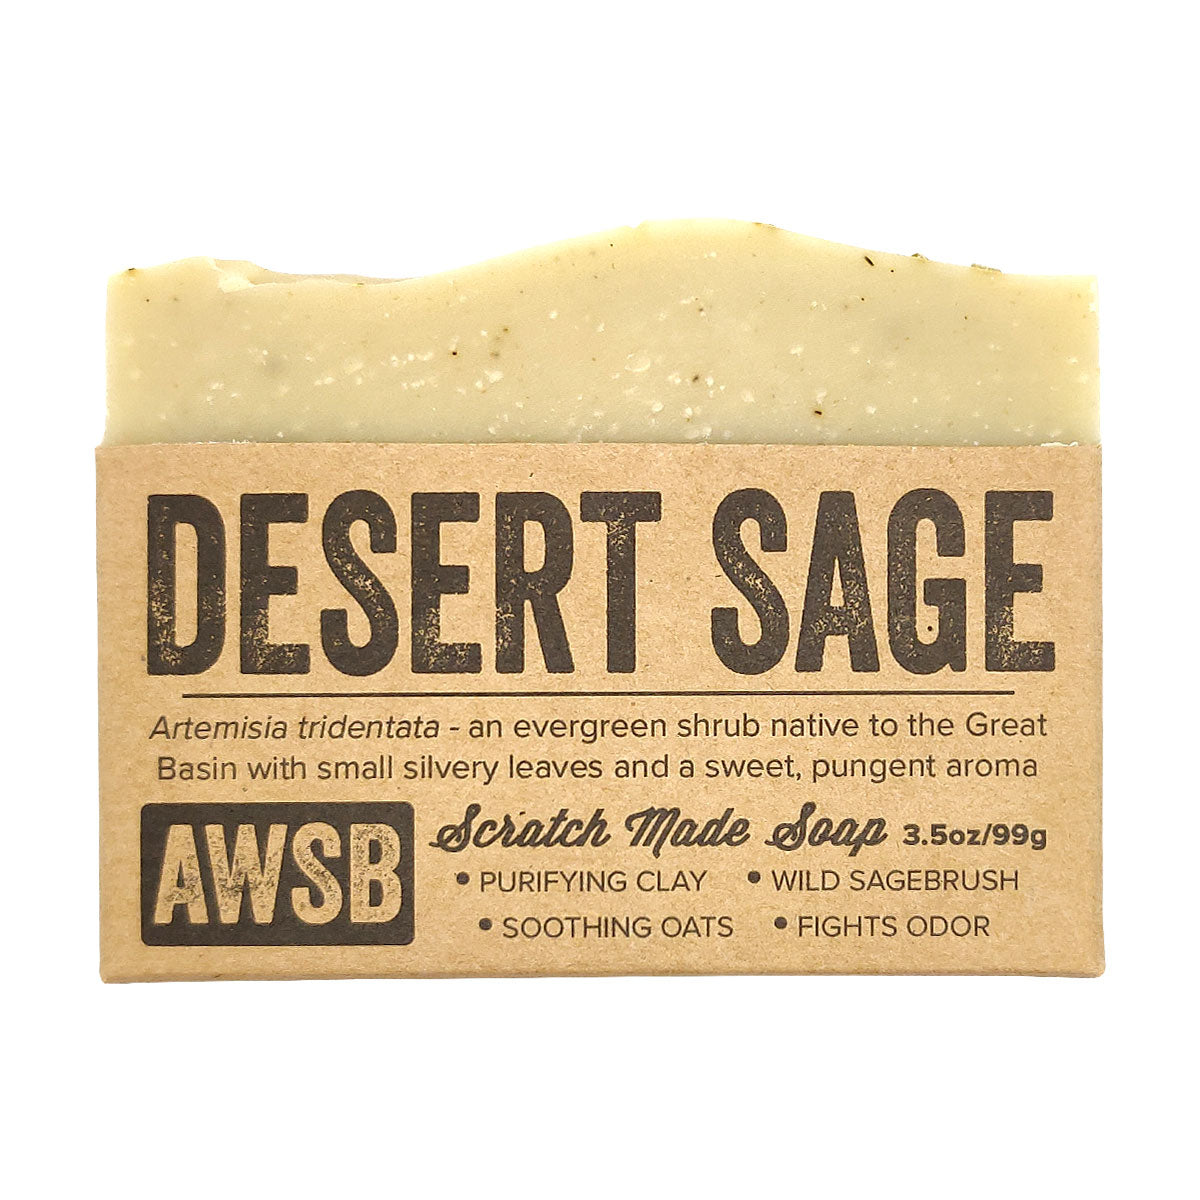 Natural Desert Sage Soap for sale, Essential Oil Soap Bar, Clean Scent, Sustainable Skincare, Vegan Cruelty Free, Face And Body, Bath Beauty, Natural Gift